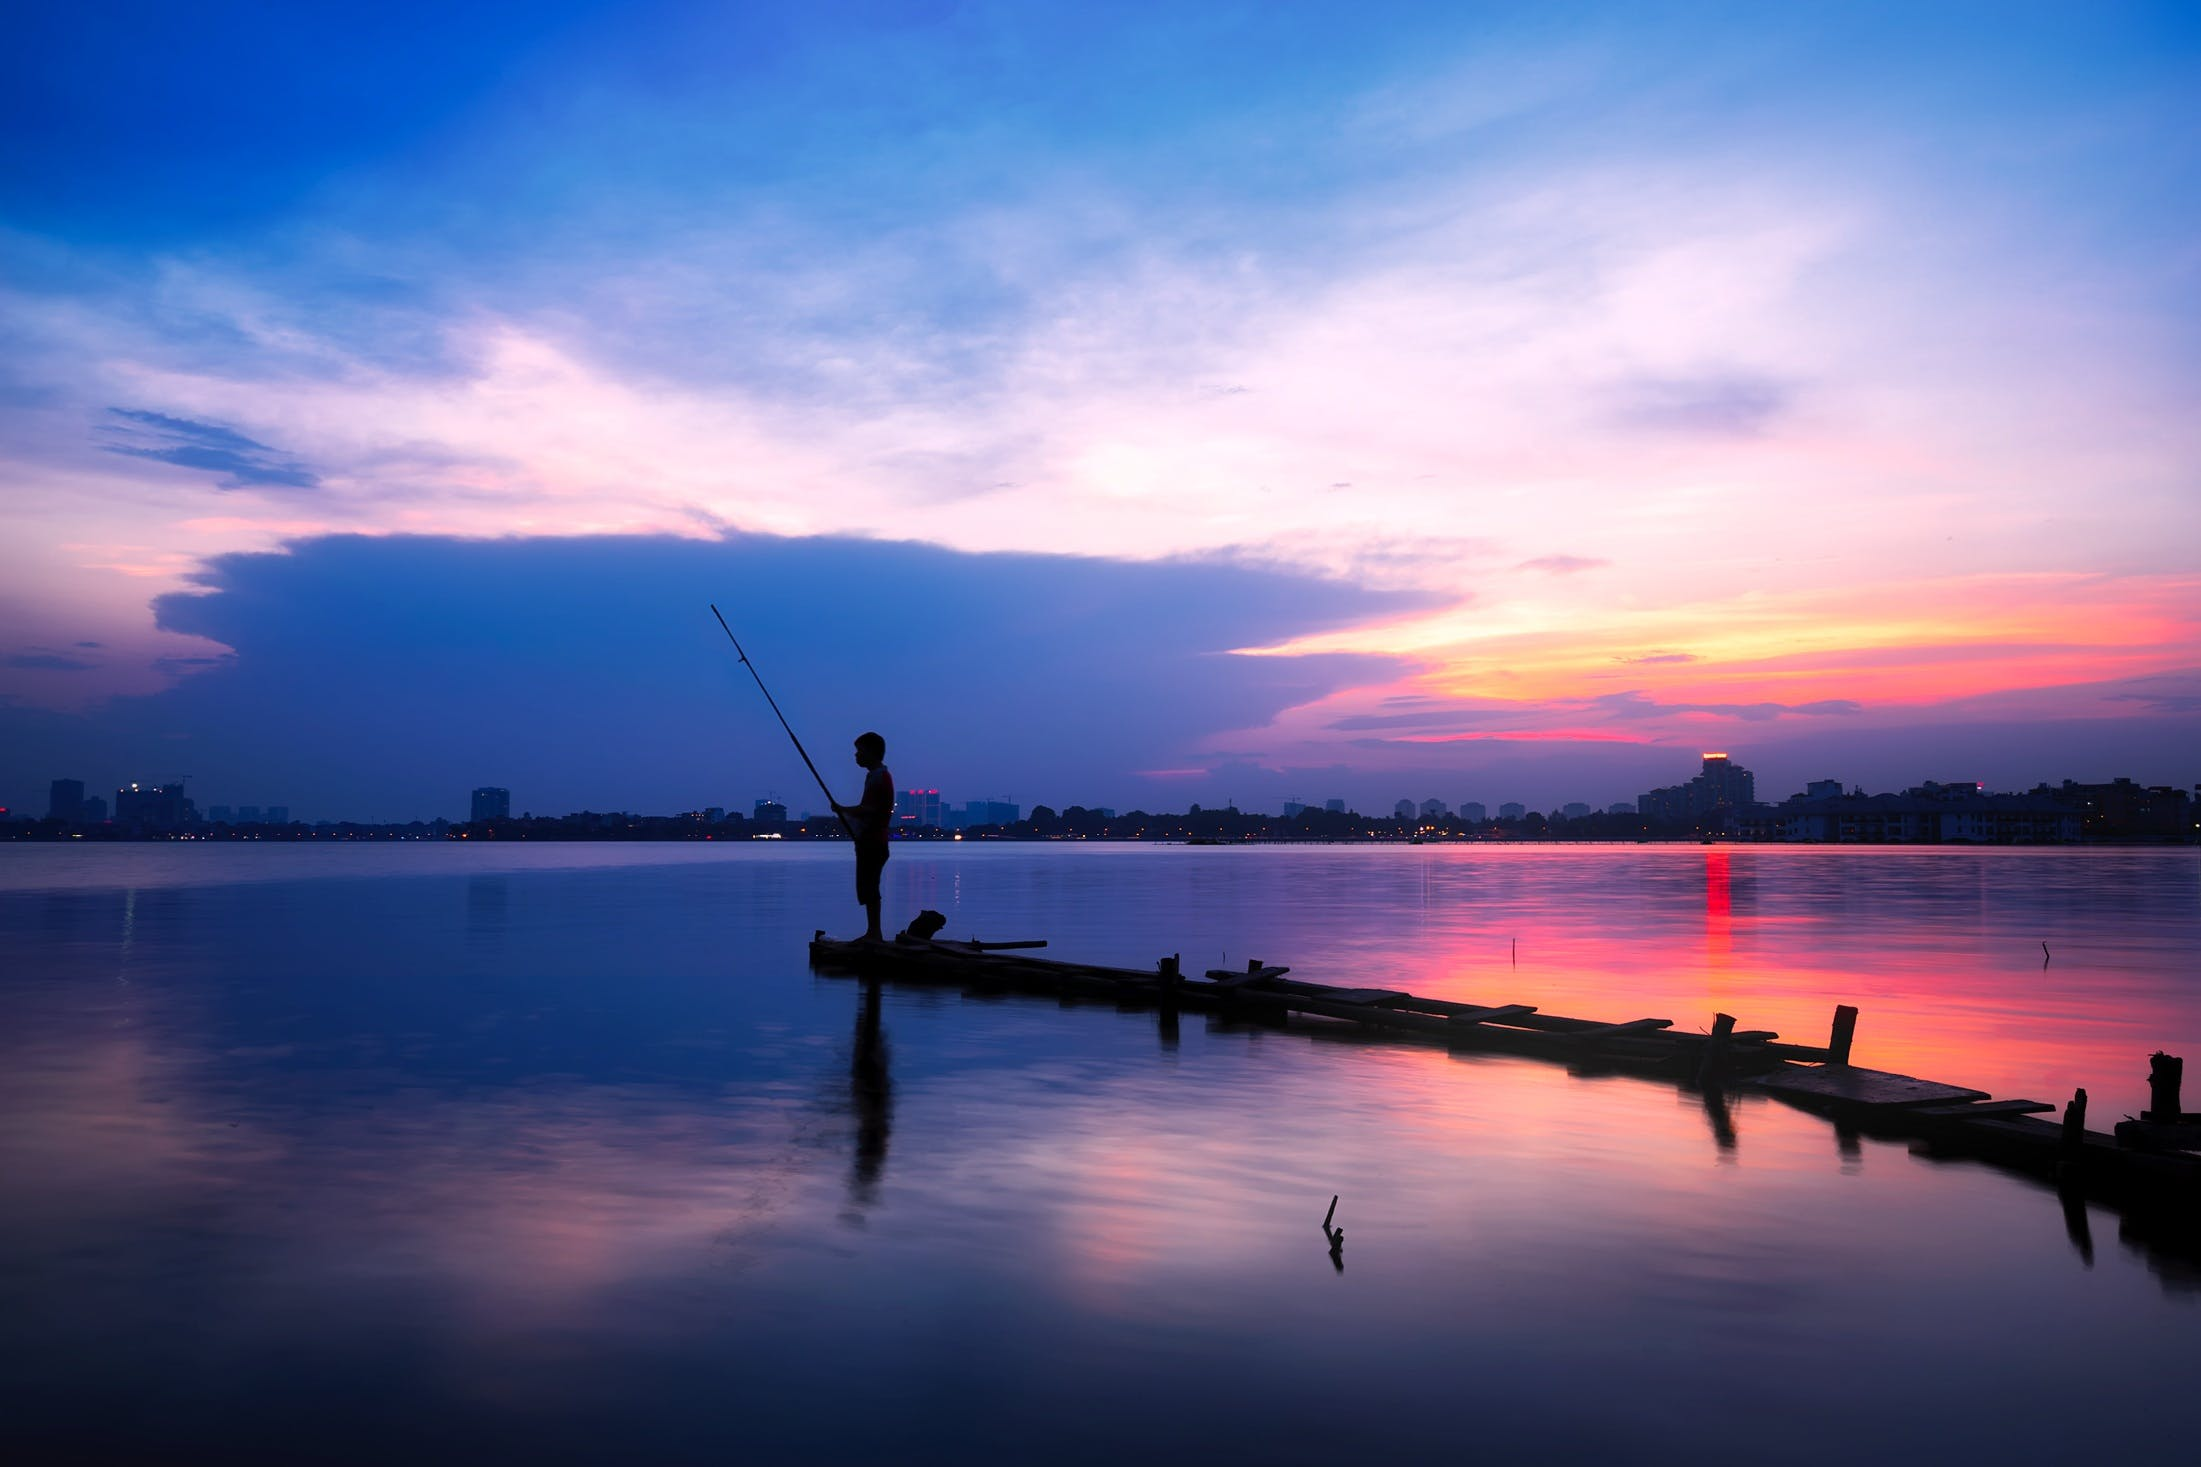 Silhouette of Man Holding Fishing Rod on Body of Water